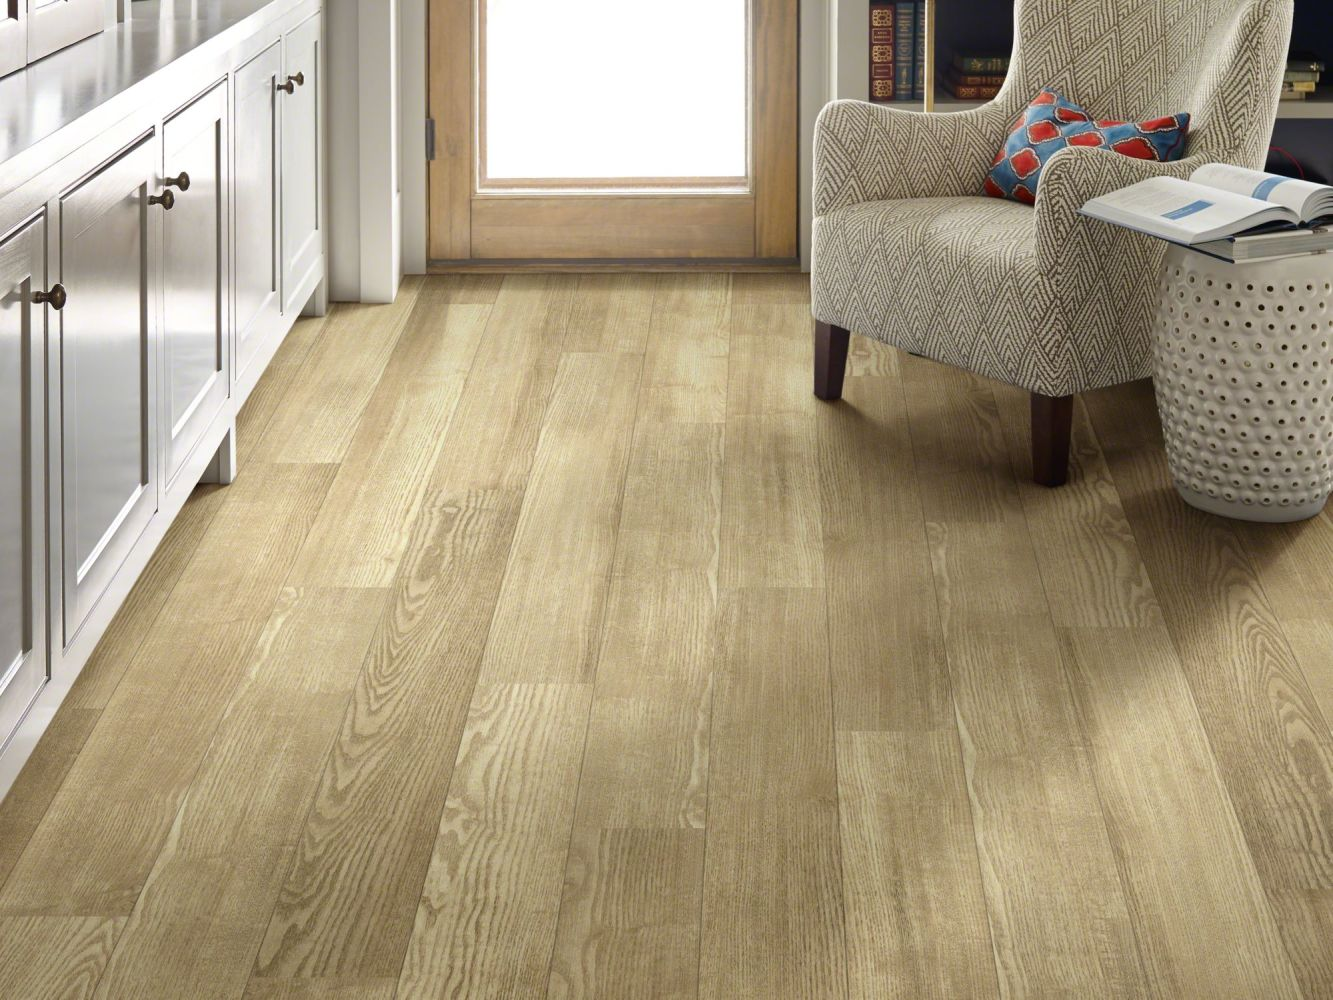 Shaw Floors Resilient Residential Three Rivers 12 Triple Ball 00173_0881V